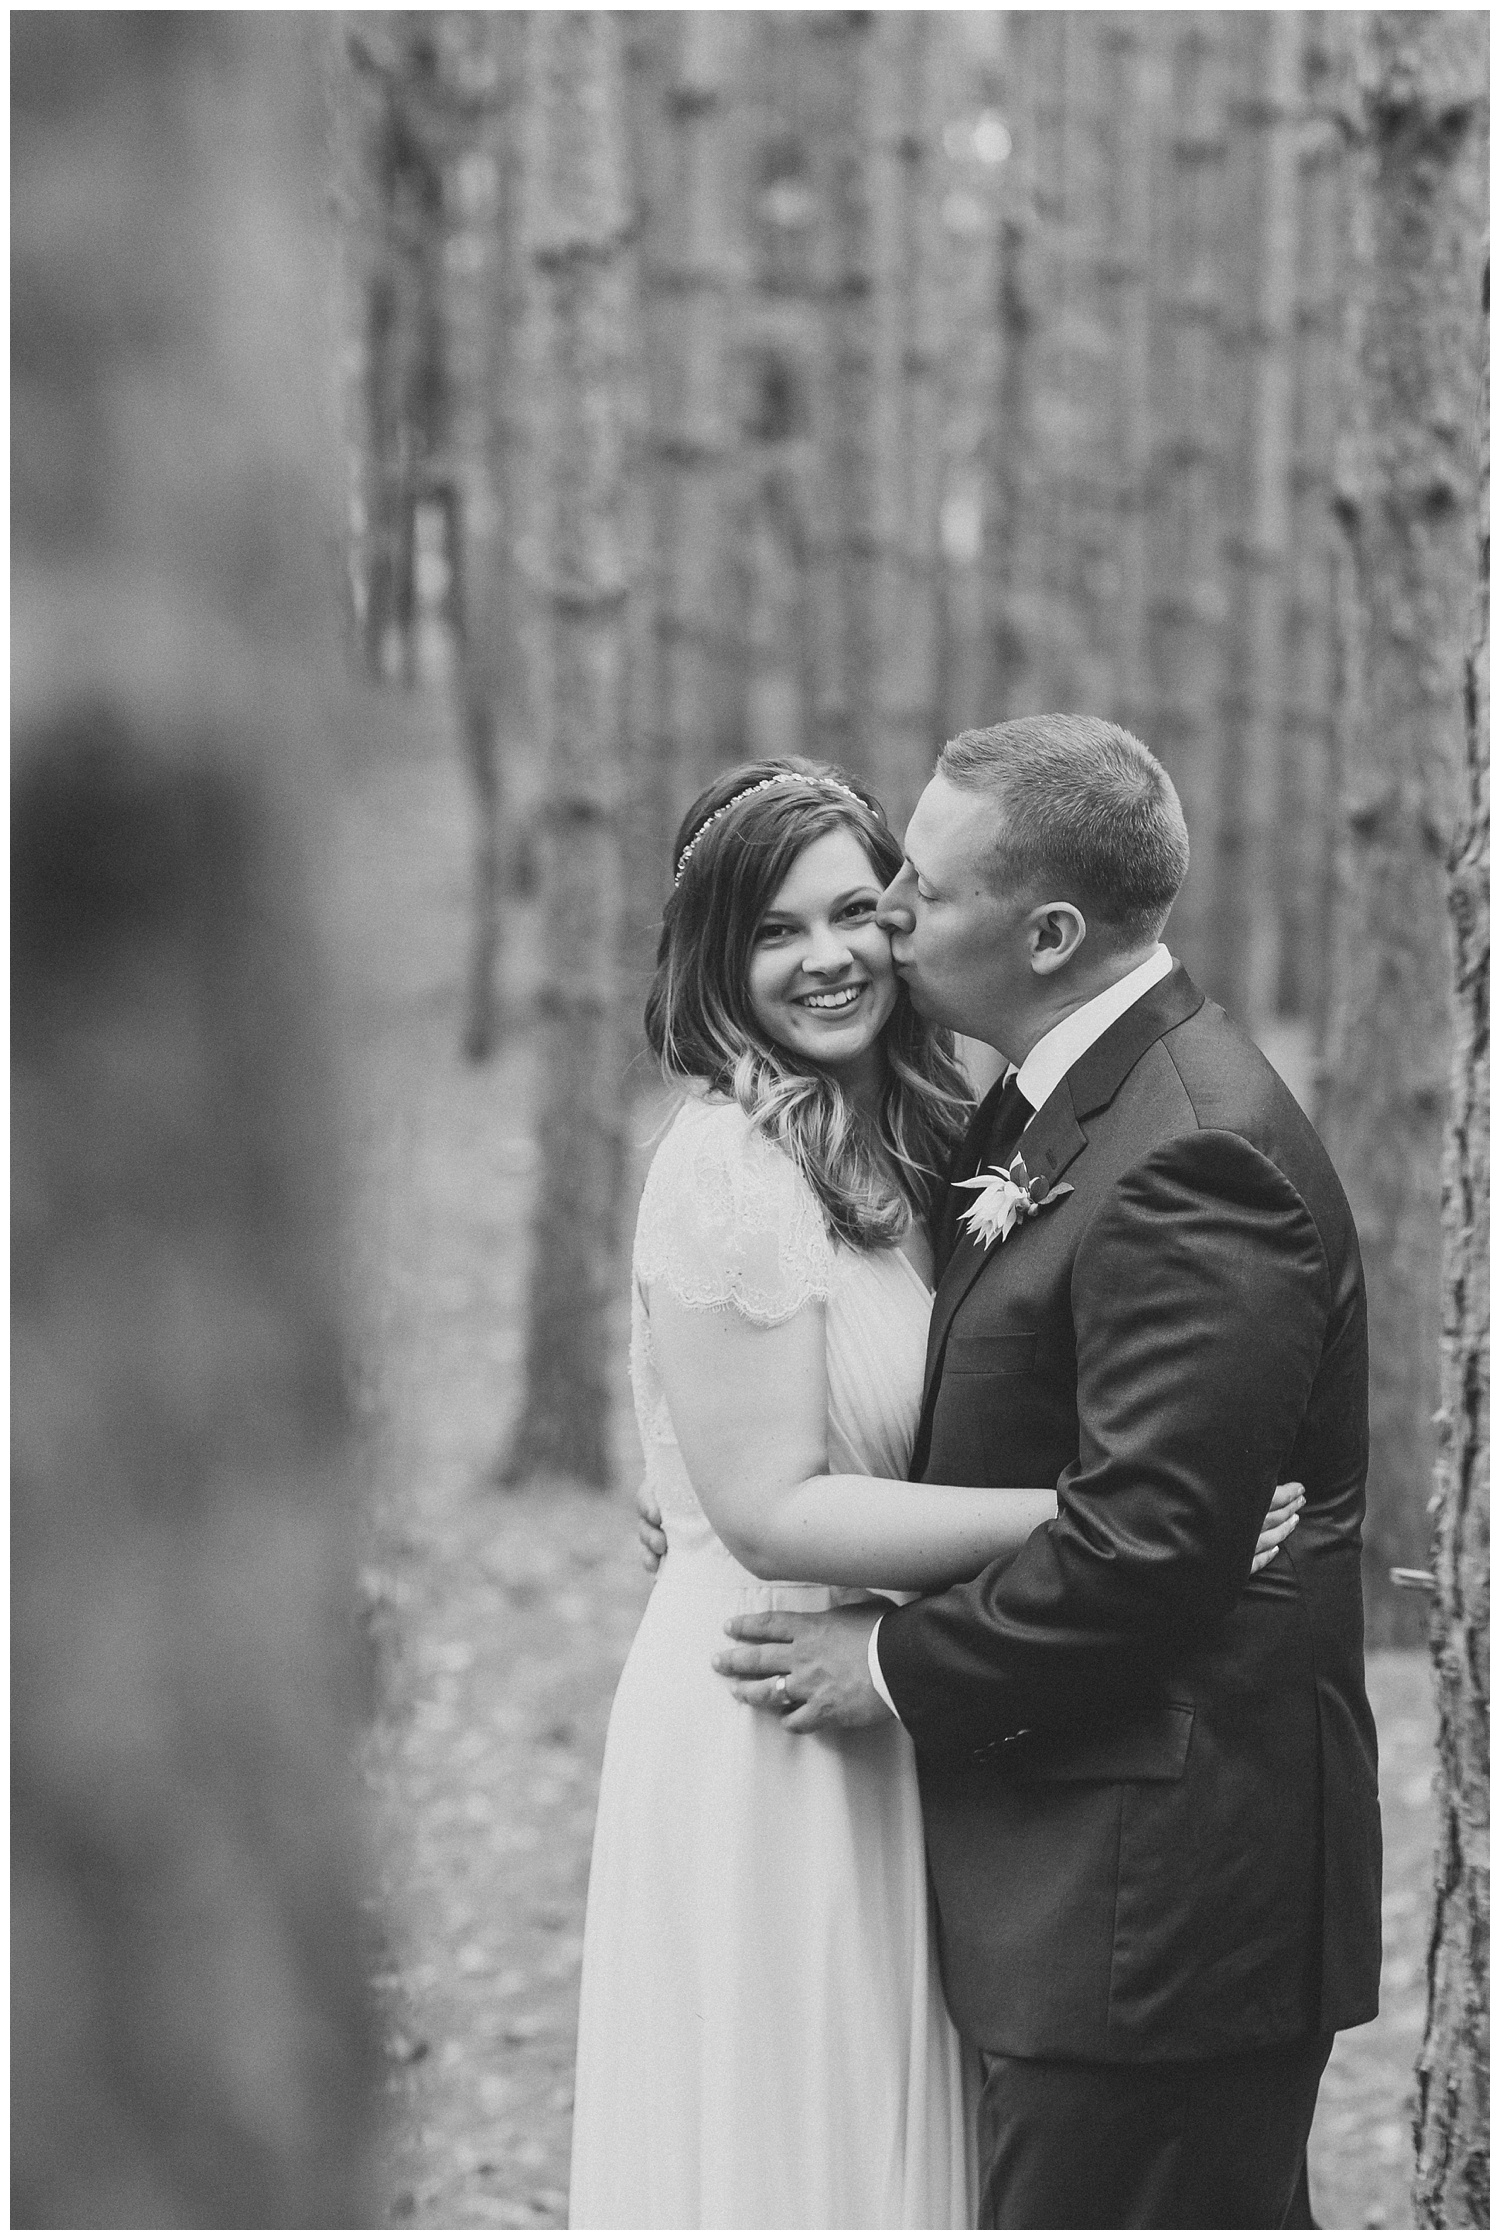 The Roxbury Barn Wedding Venue | Bride and Groom | Barn Wedding